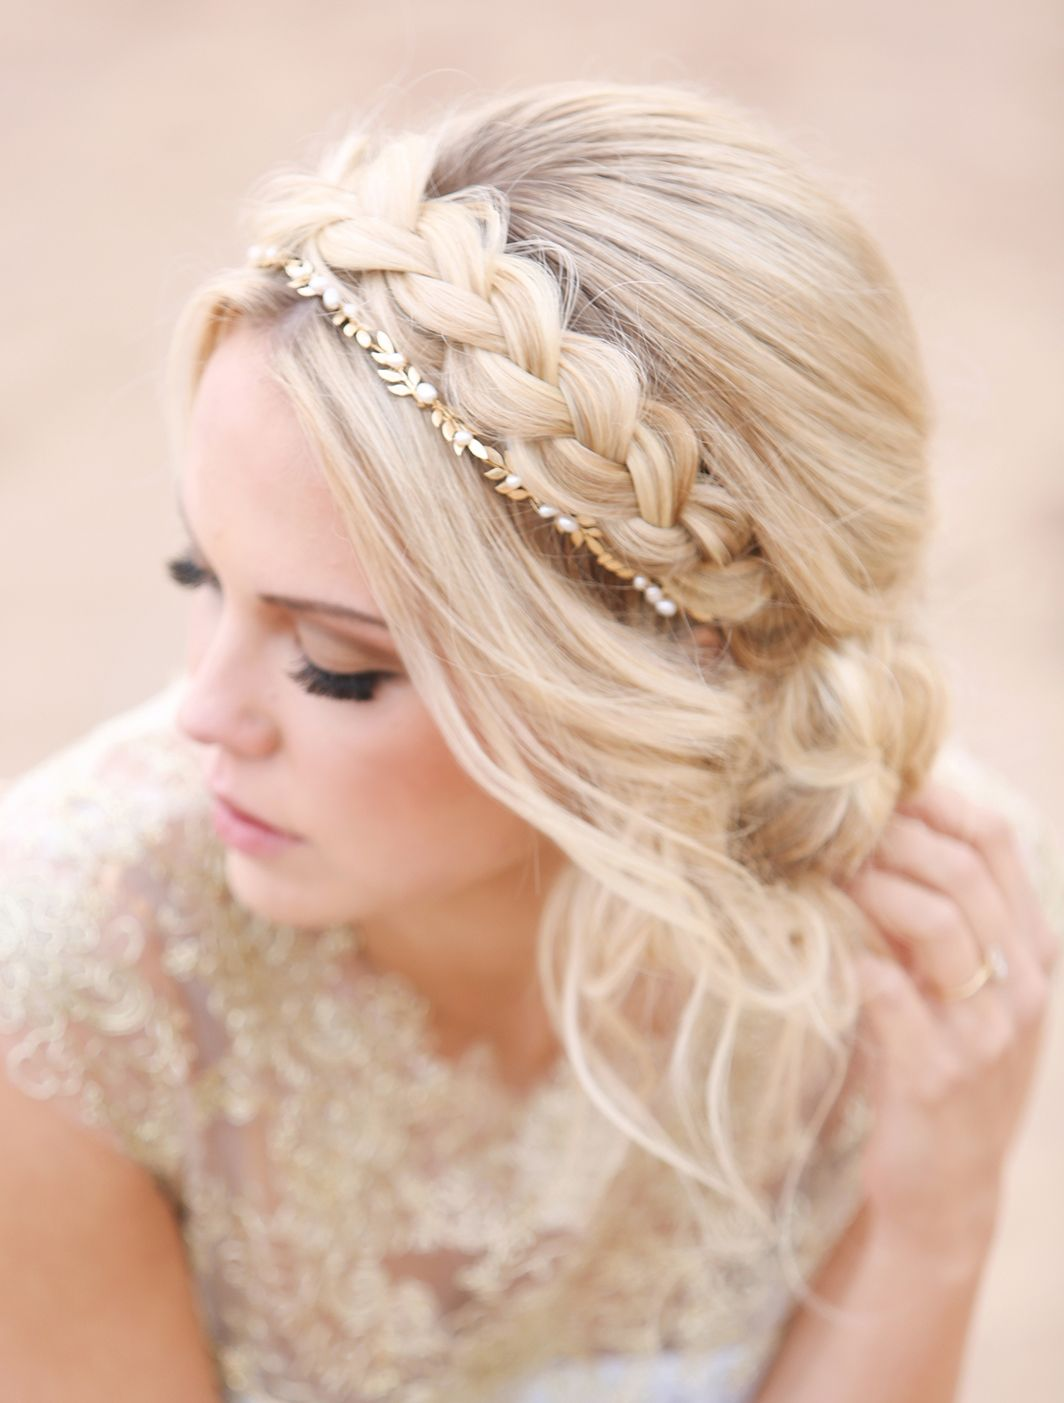 updo with headband braid. wedding hairstyle | made the cut